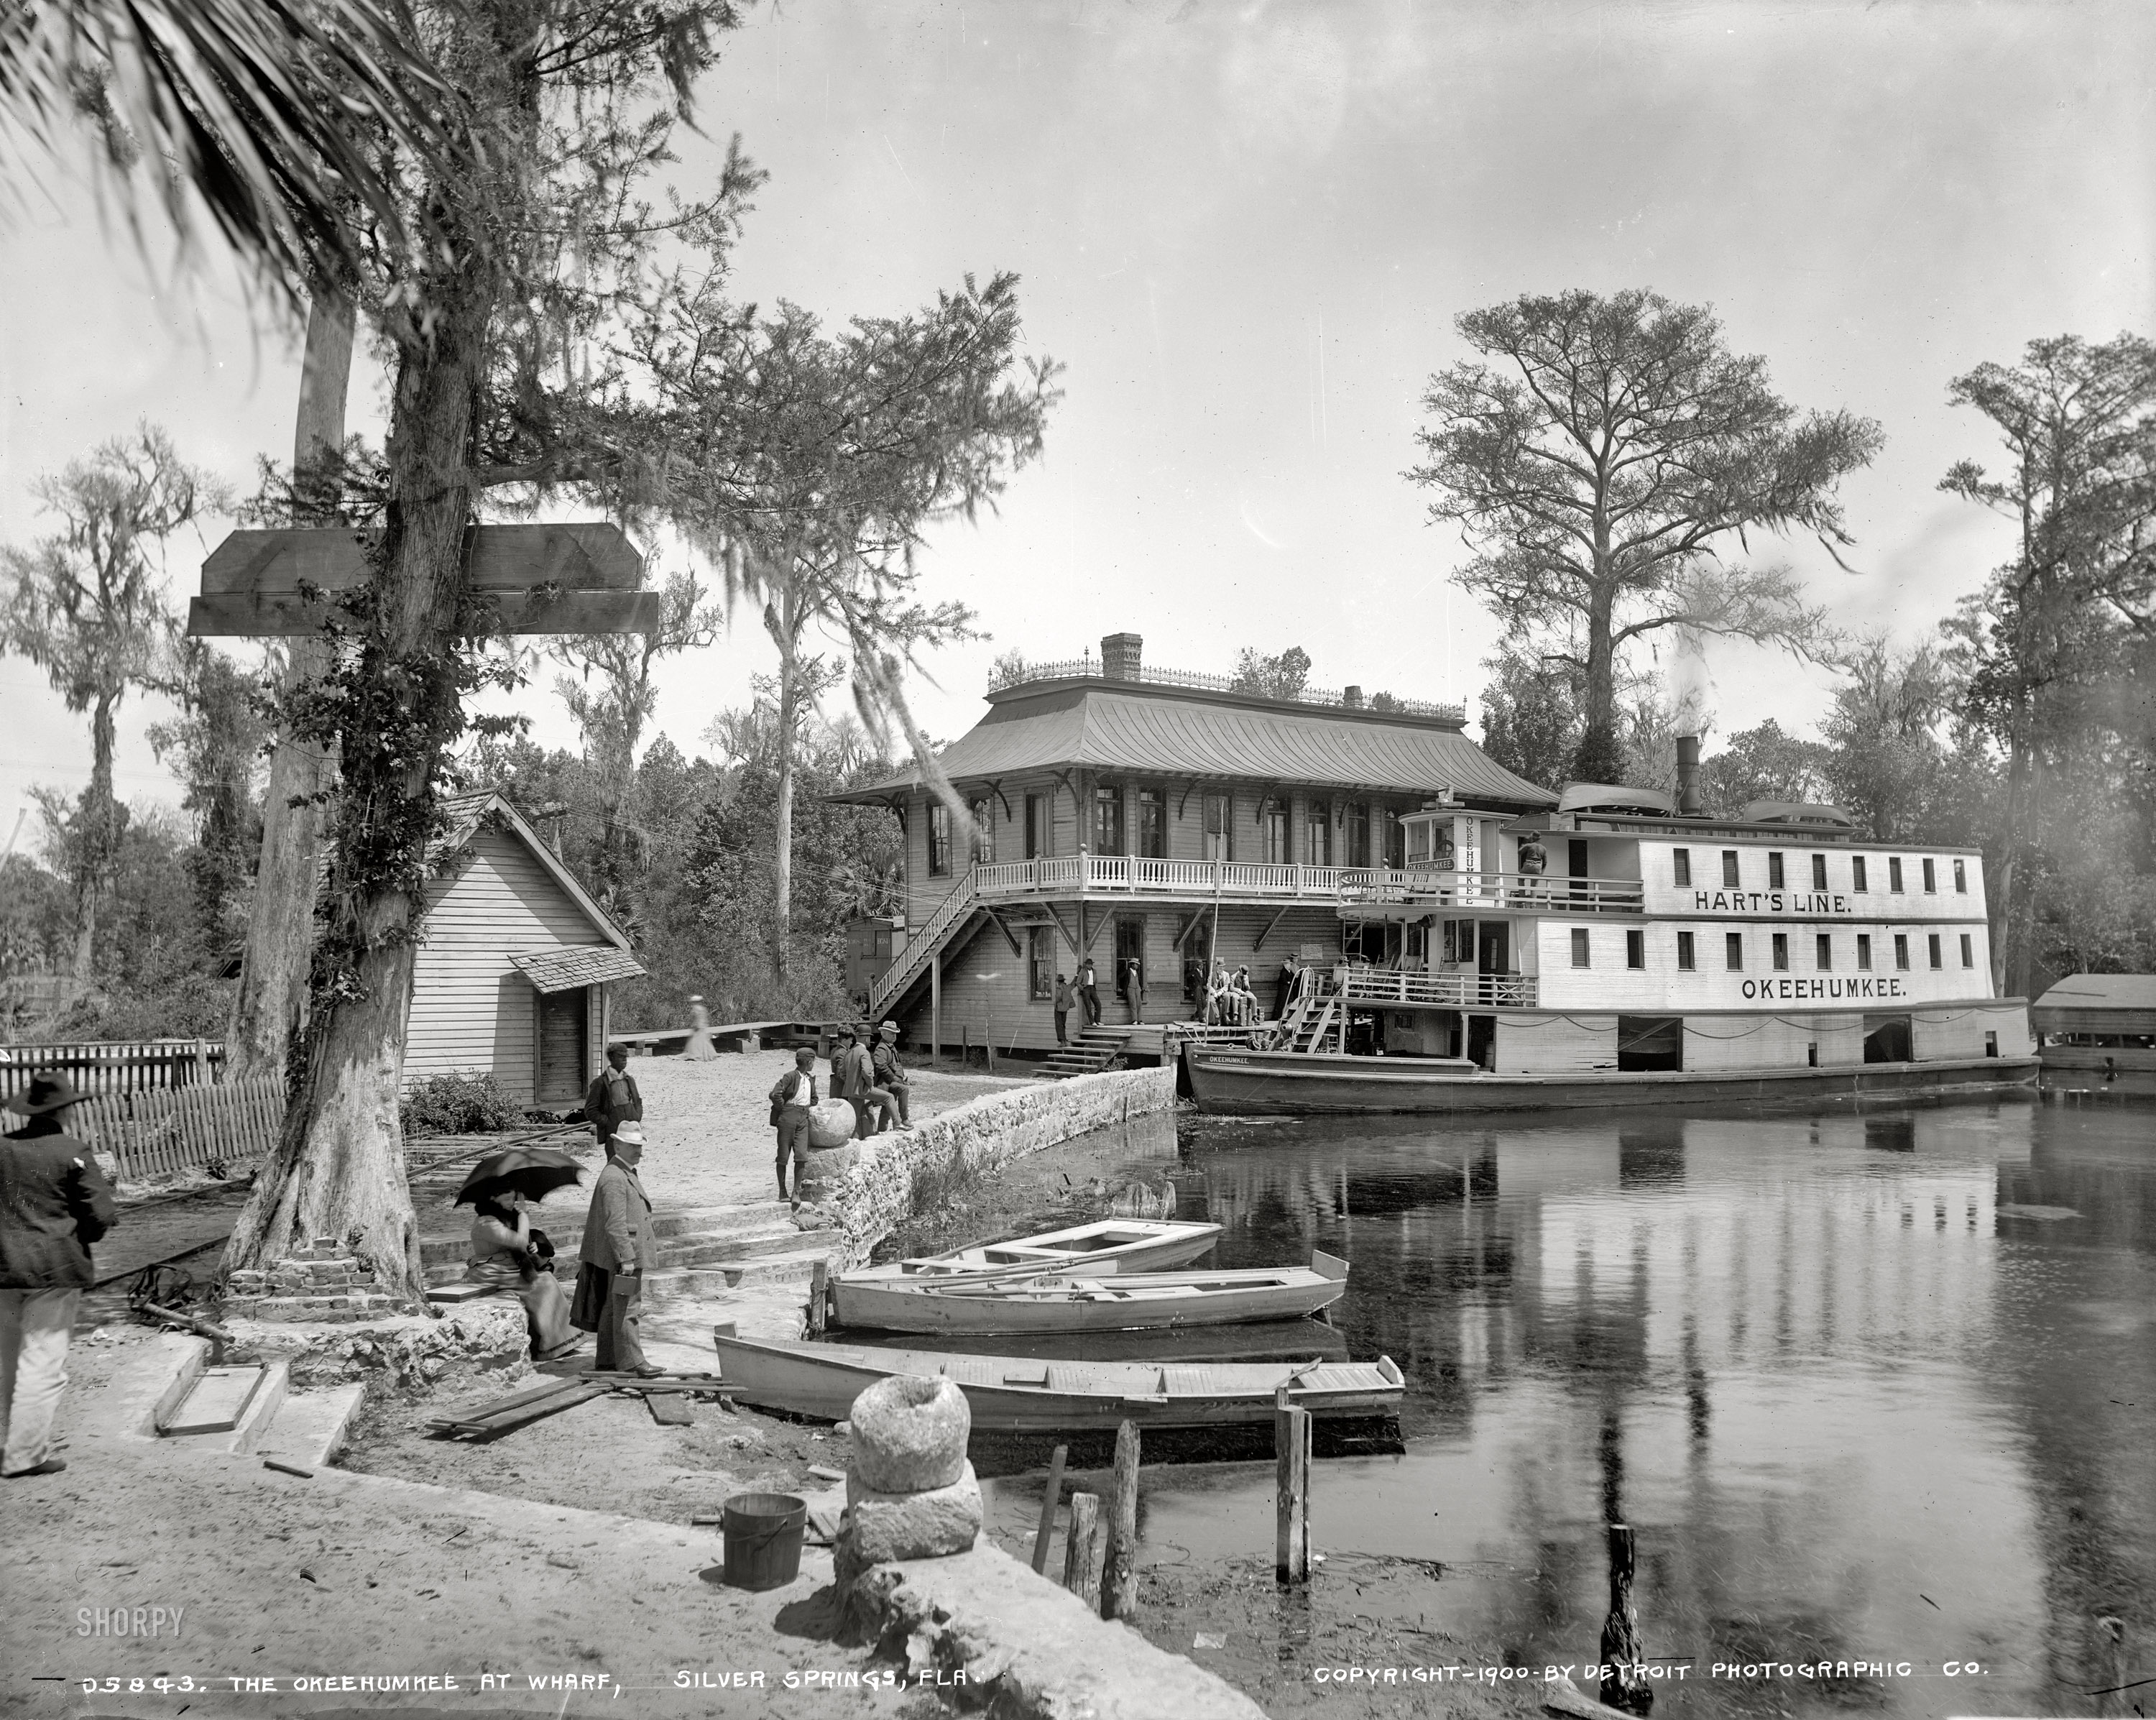 Shorpy Historic Picture Archive Silver Springs 1900